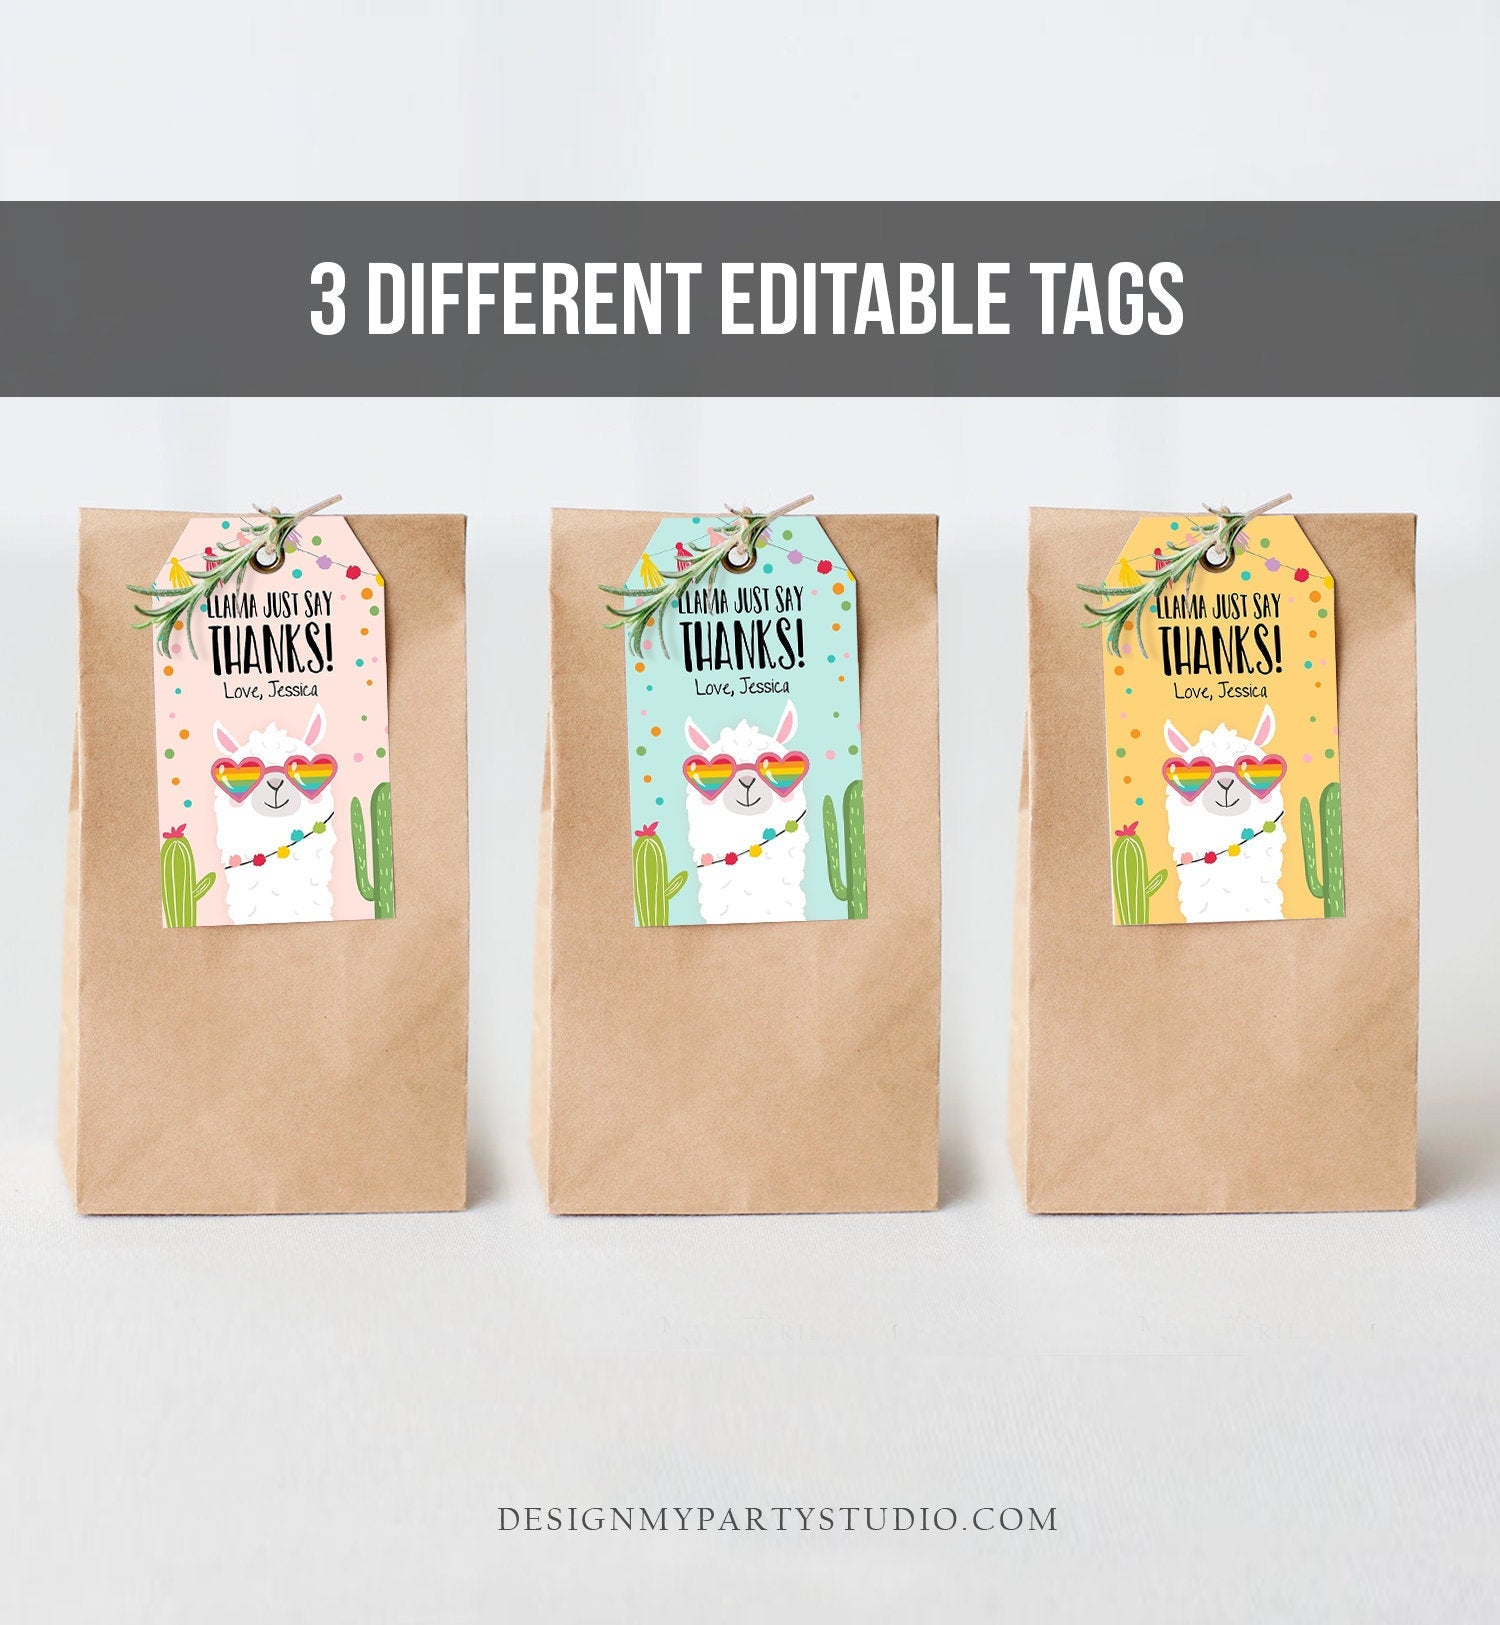 Editable Llama Favor Tags Whole Llama Fun Thank You Tags Llama Birthday Fiesta Mexican Cactus Gift Tag Alpaca Digital Corjl Template 0142